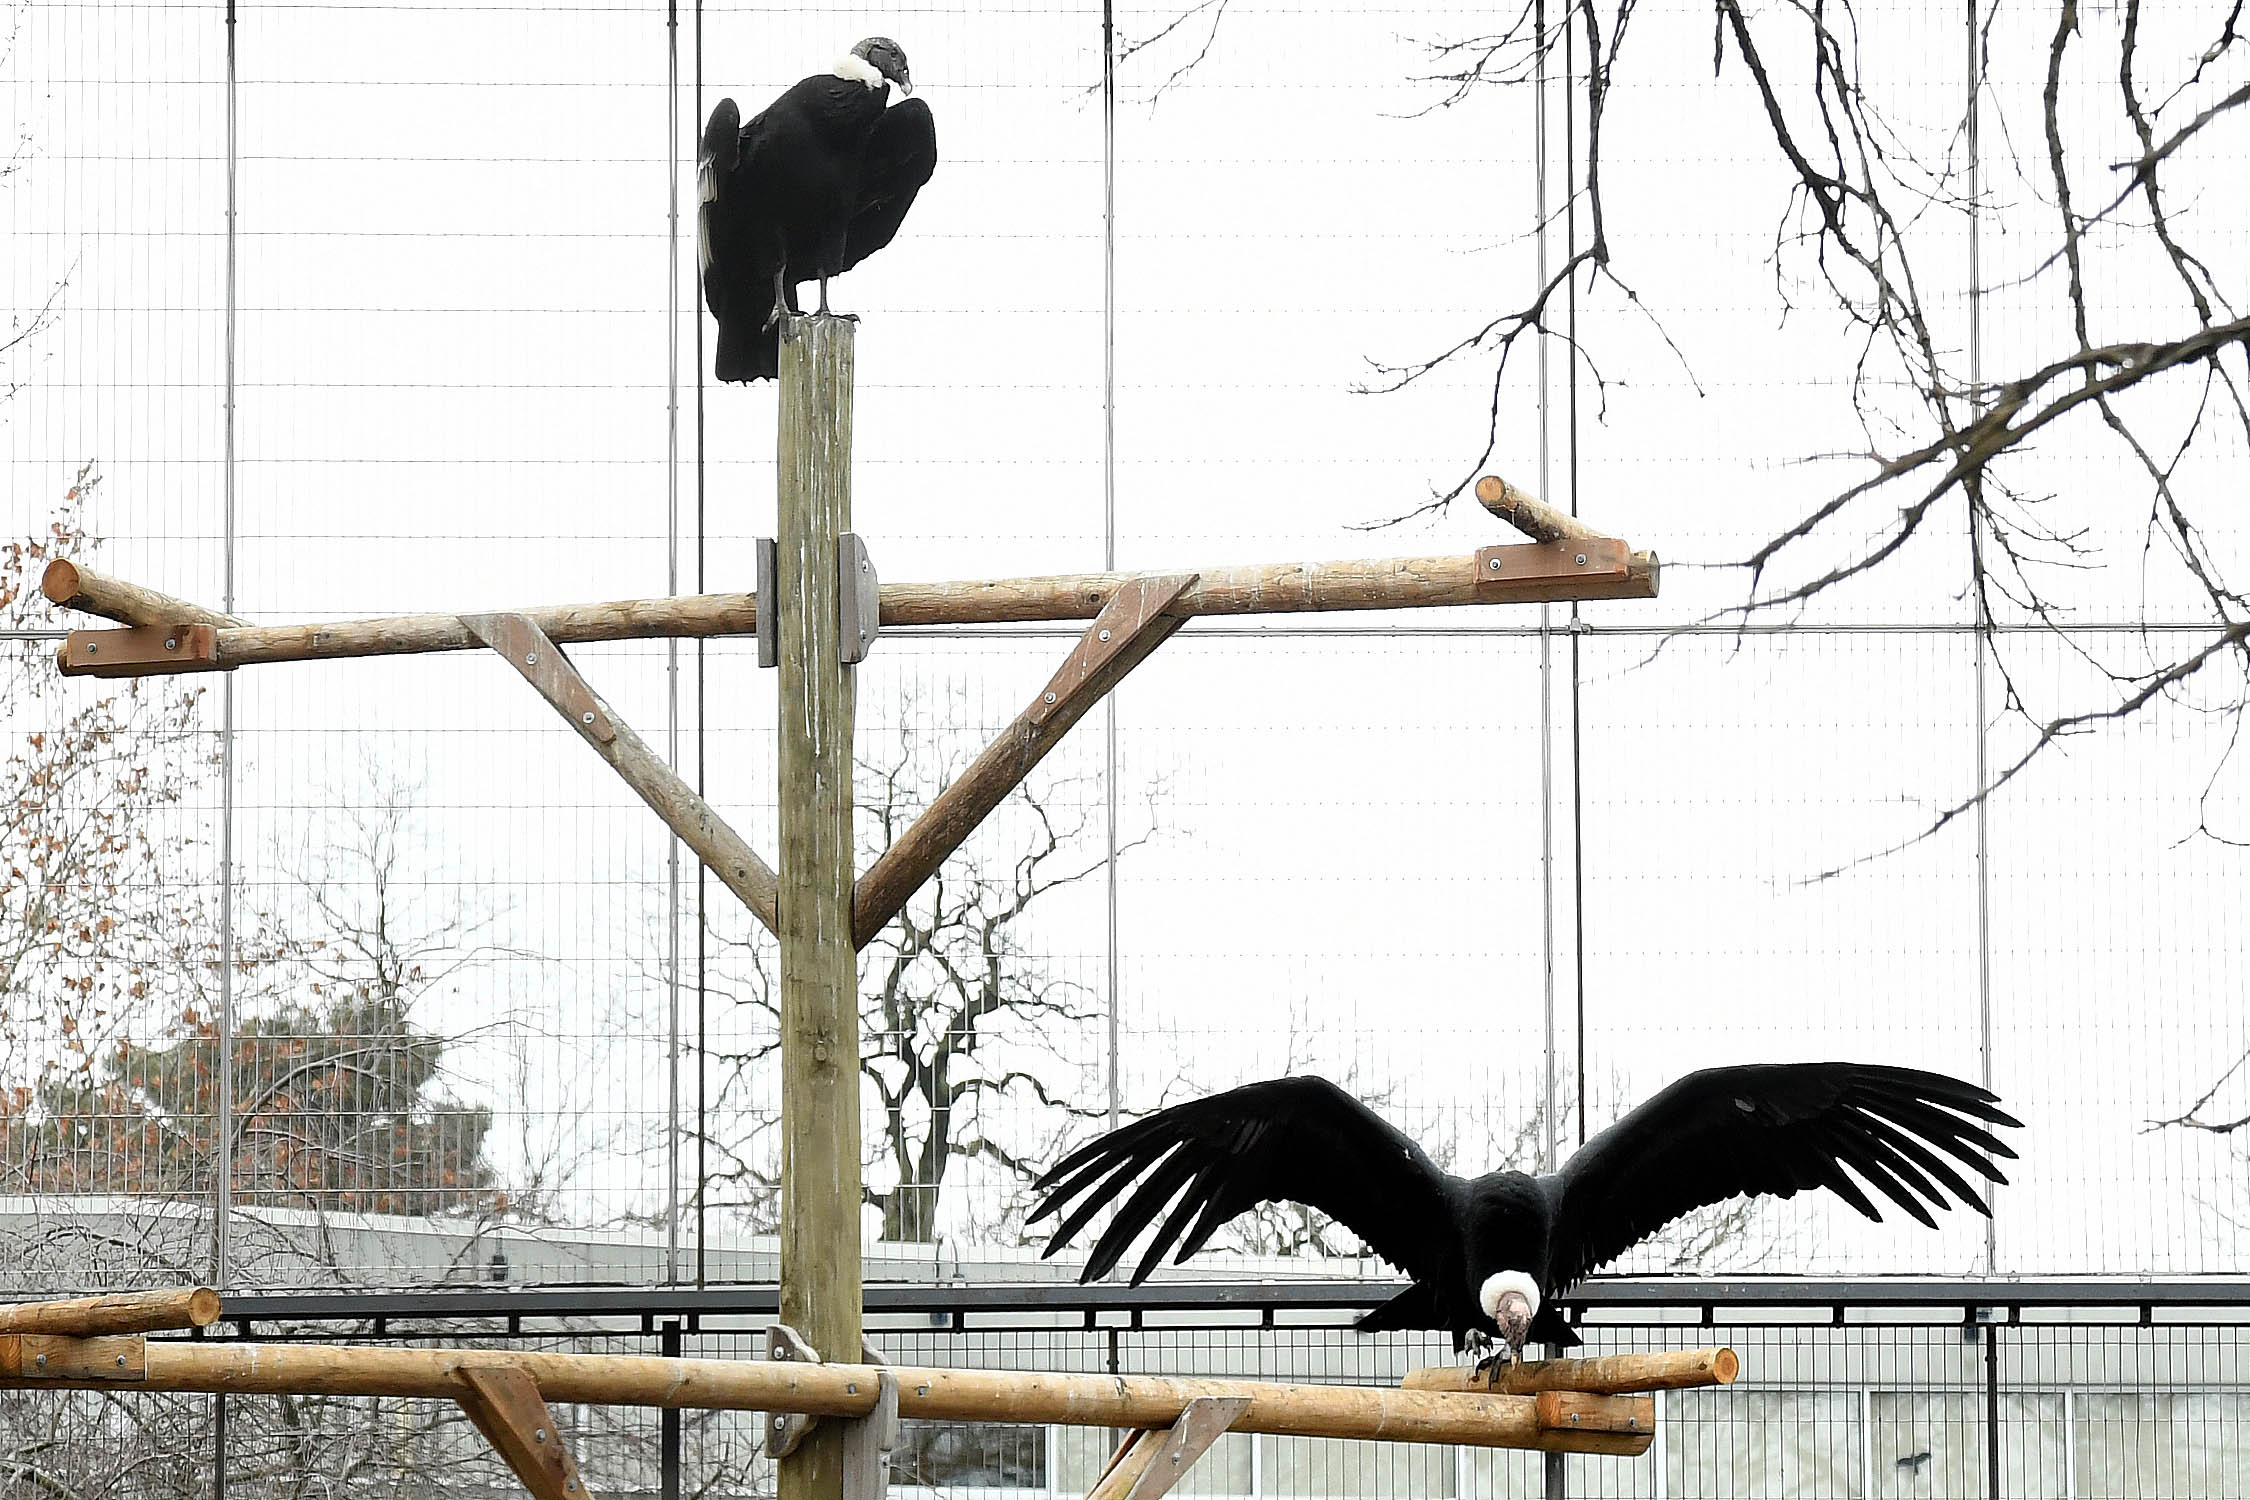 The world's largest flying bird, the Andean Condor, has a wingspan of close to 10 feet (photo courtesy of The Chicago Zoological Society, Brookfield Zoo)